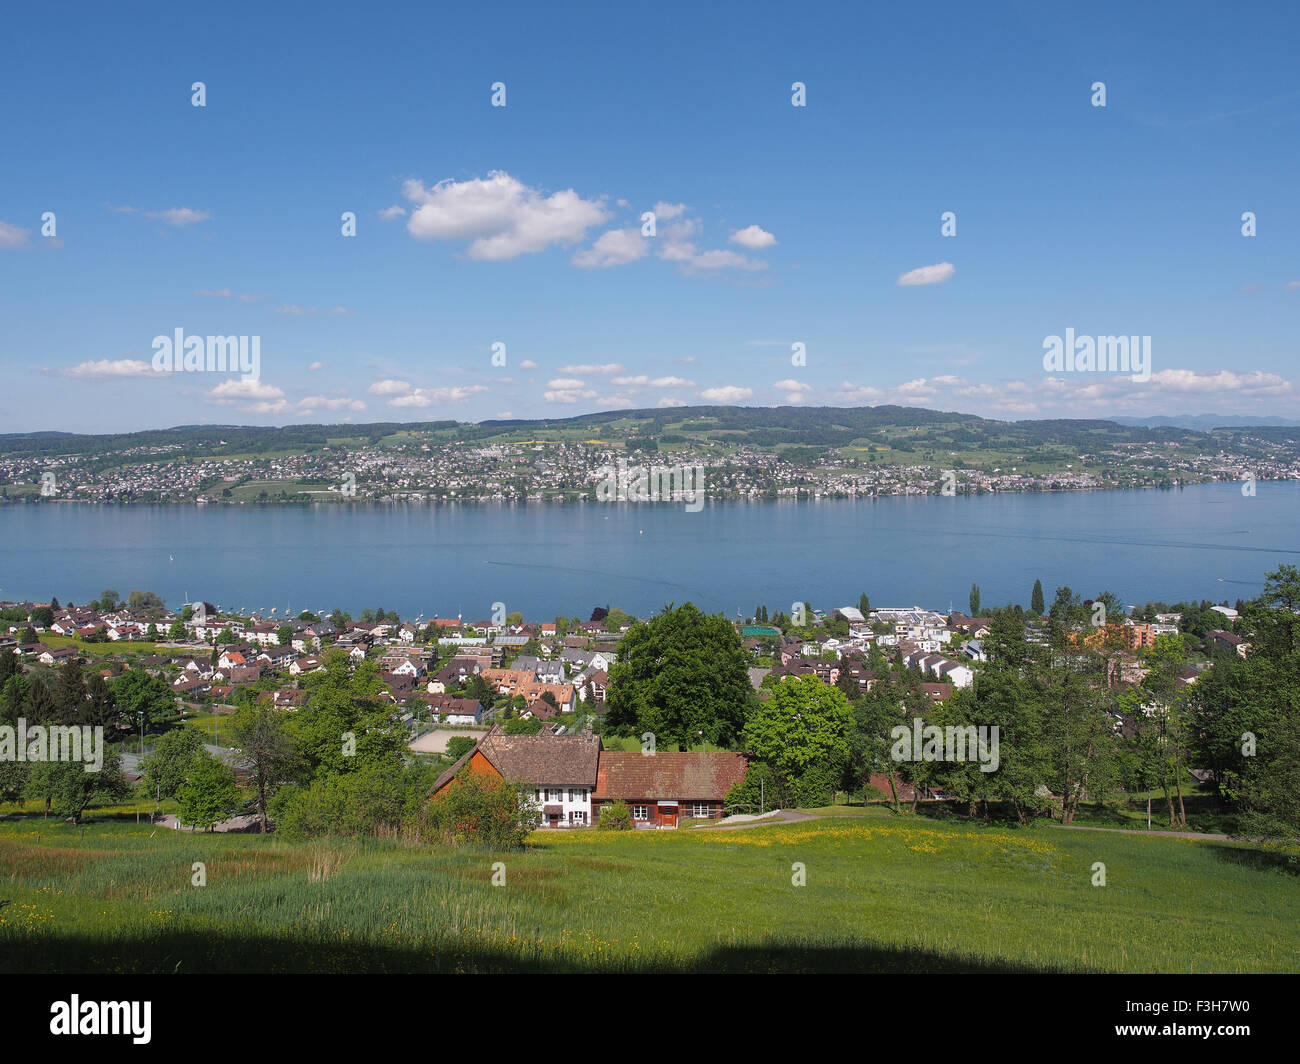 Lake of Zurich - Stock Image